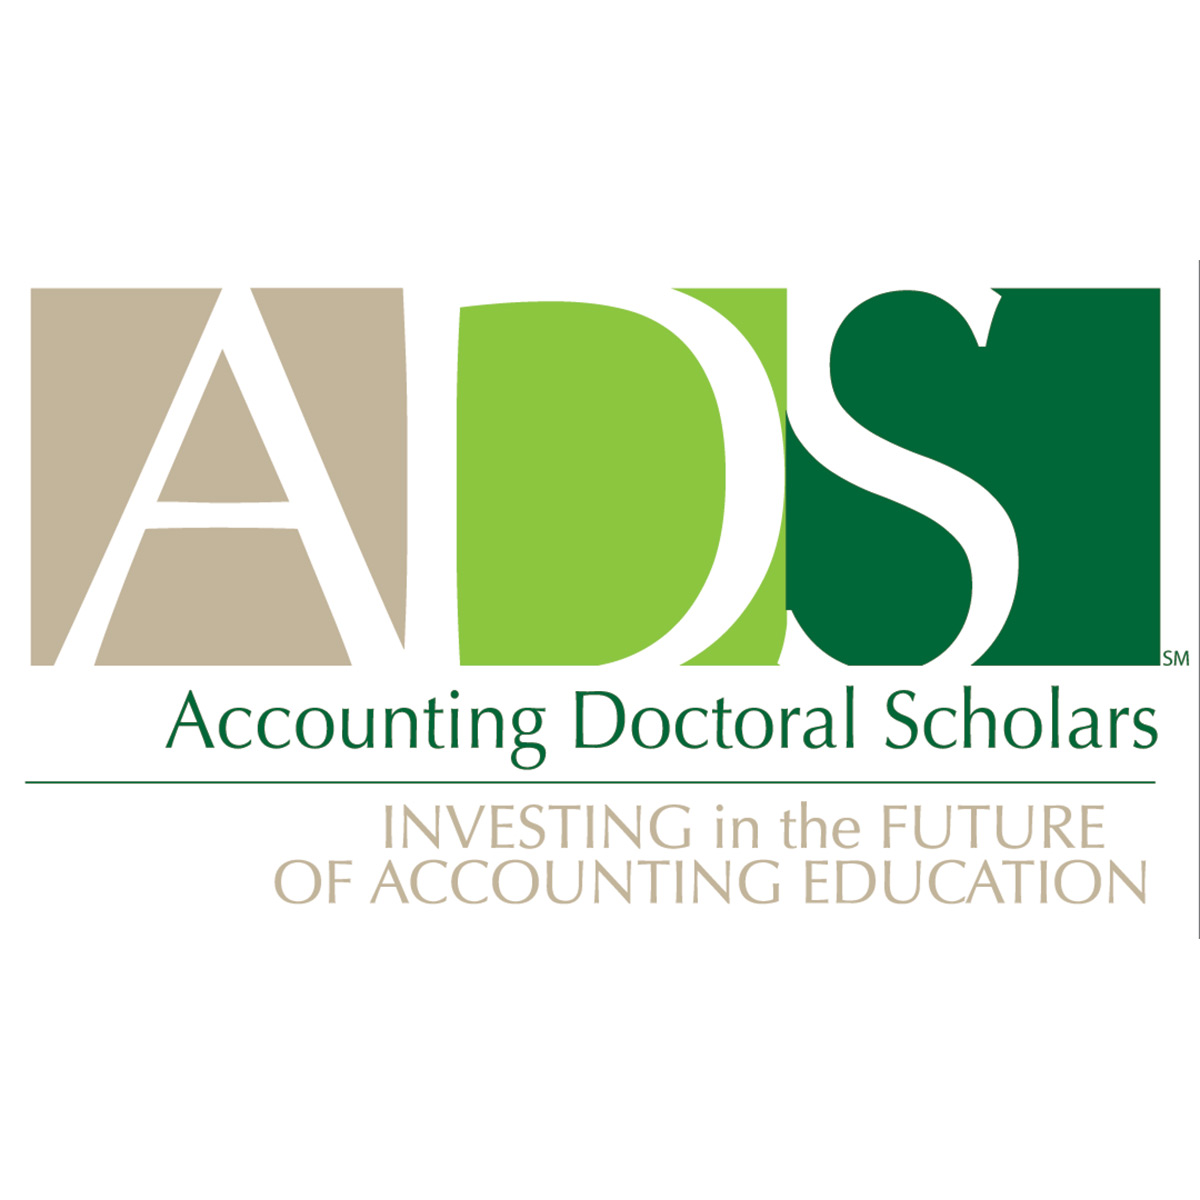 professionalism of accounting Published: mon, 5 dec 2016 introduction code of professional conduct for accountants, is the basic content of professional ethics for accountants, which the accountants should follow in the occupation activity and is used to adjust the behavior of accountants.